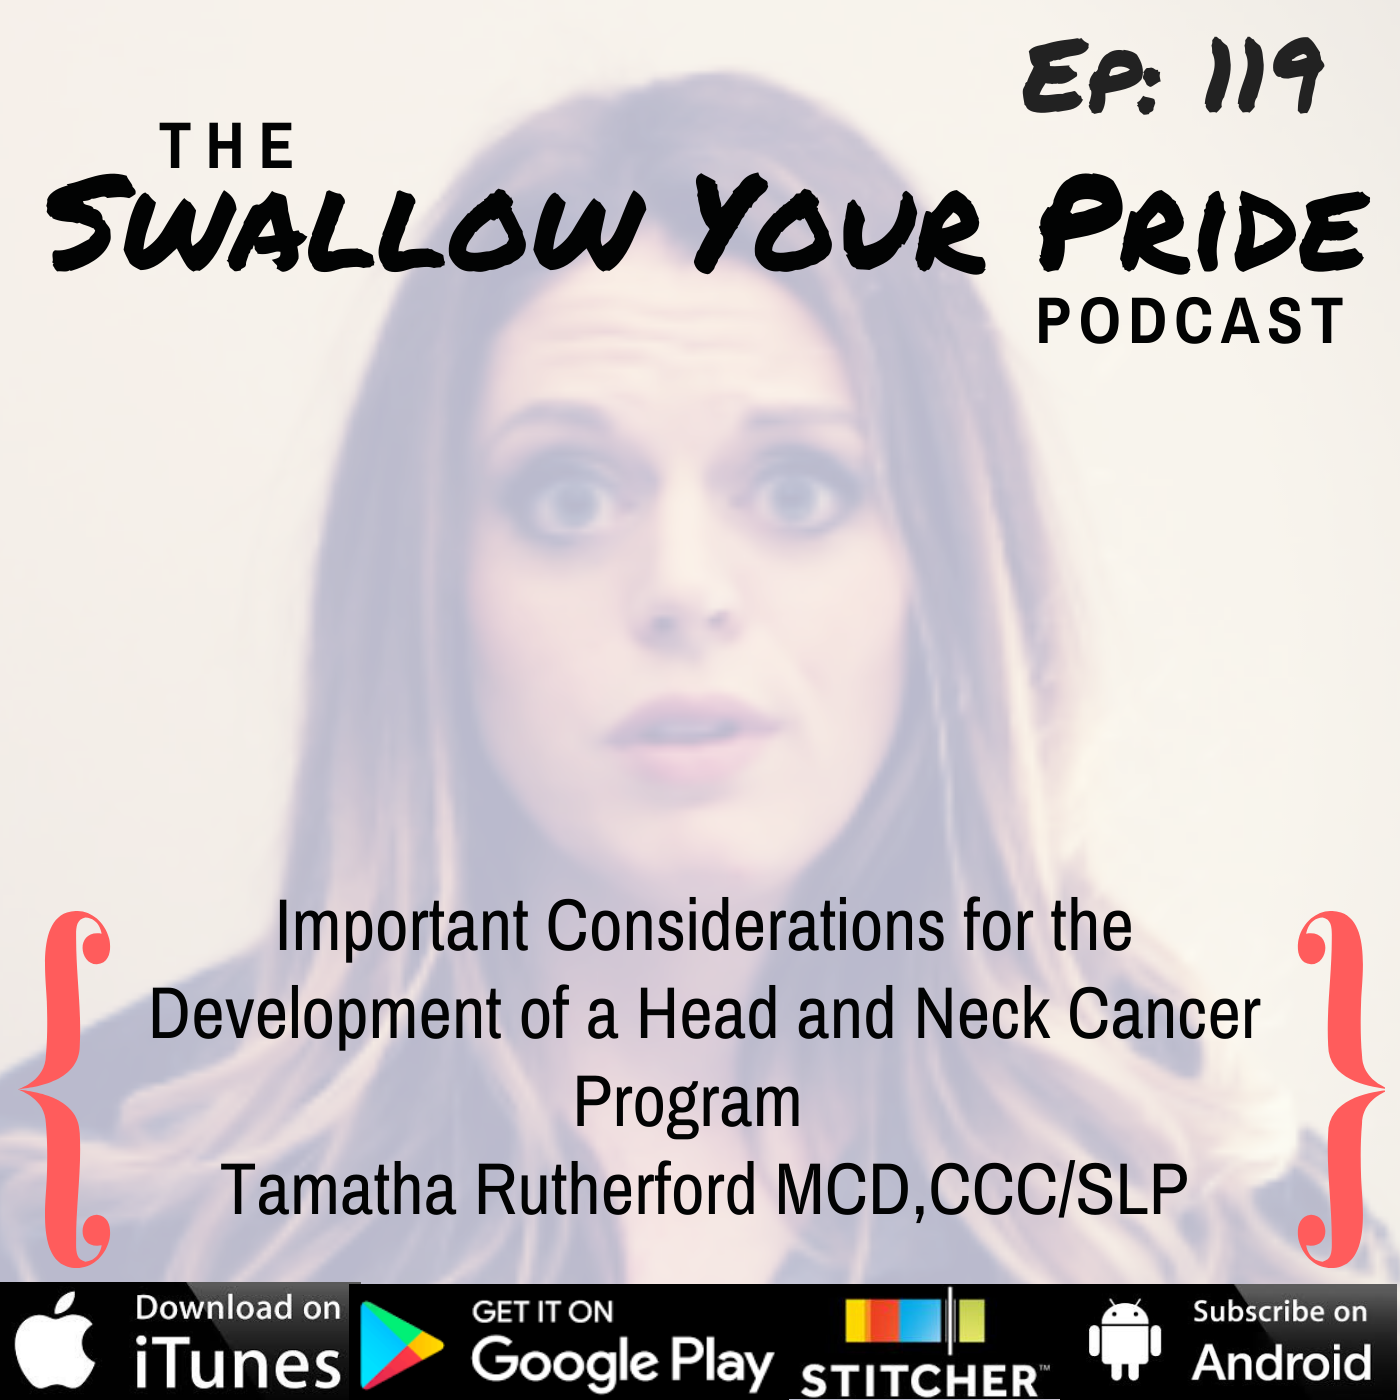 119 – Tamatha Rutherford MCD,CCC/SLP – Important Considerations for the Development of a Head and Neck Cancer Program